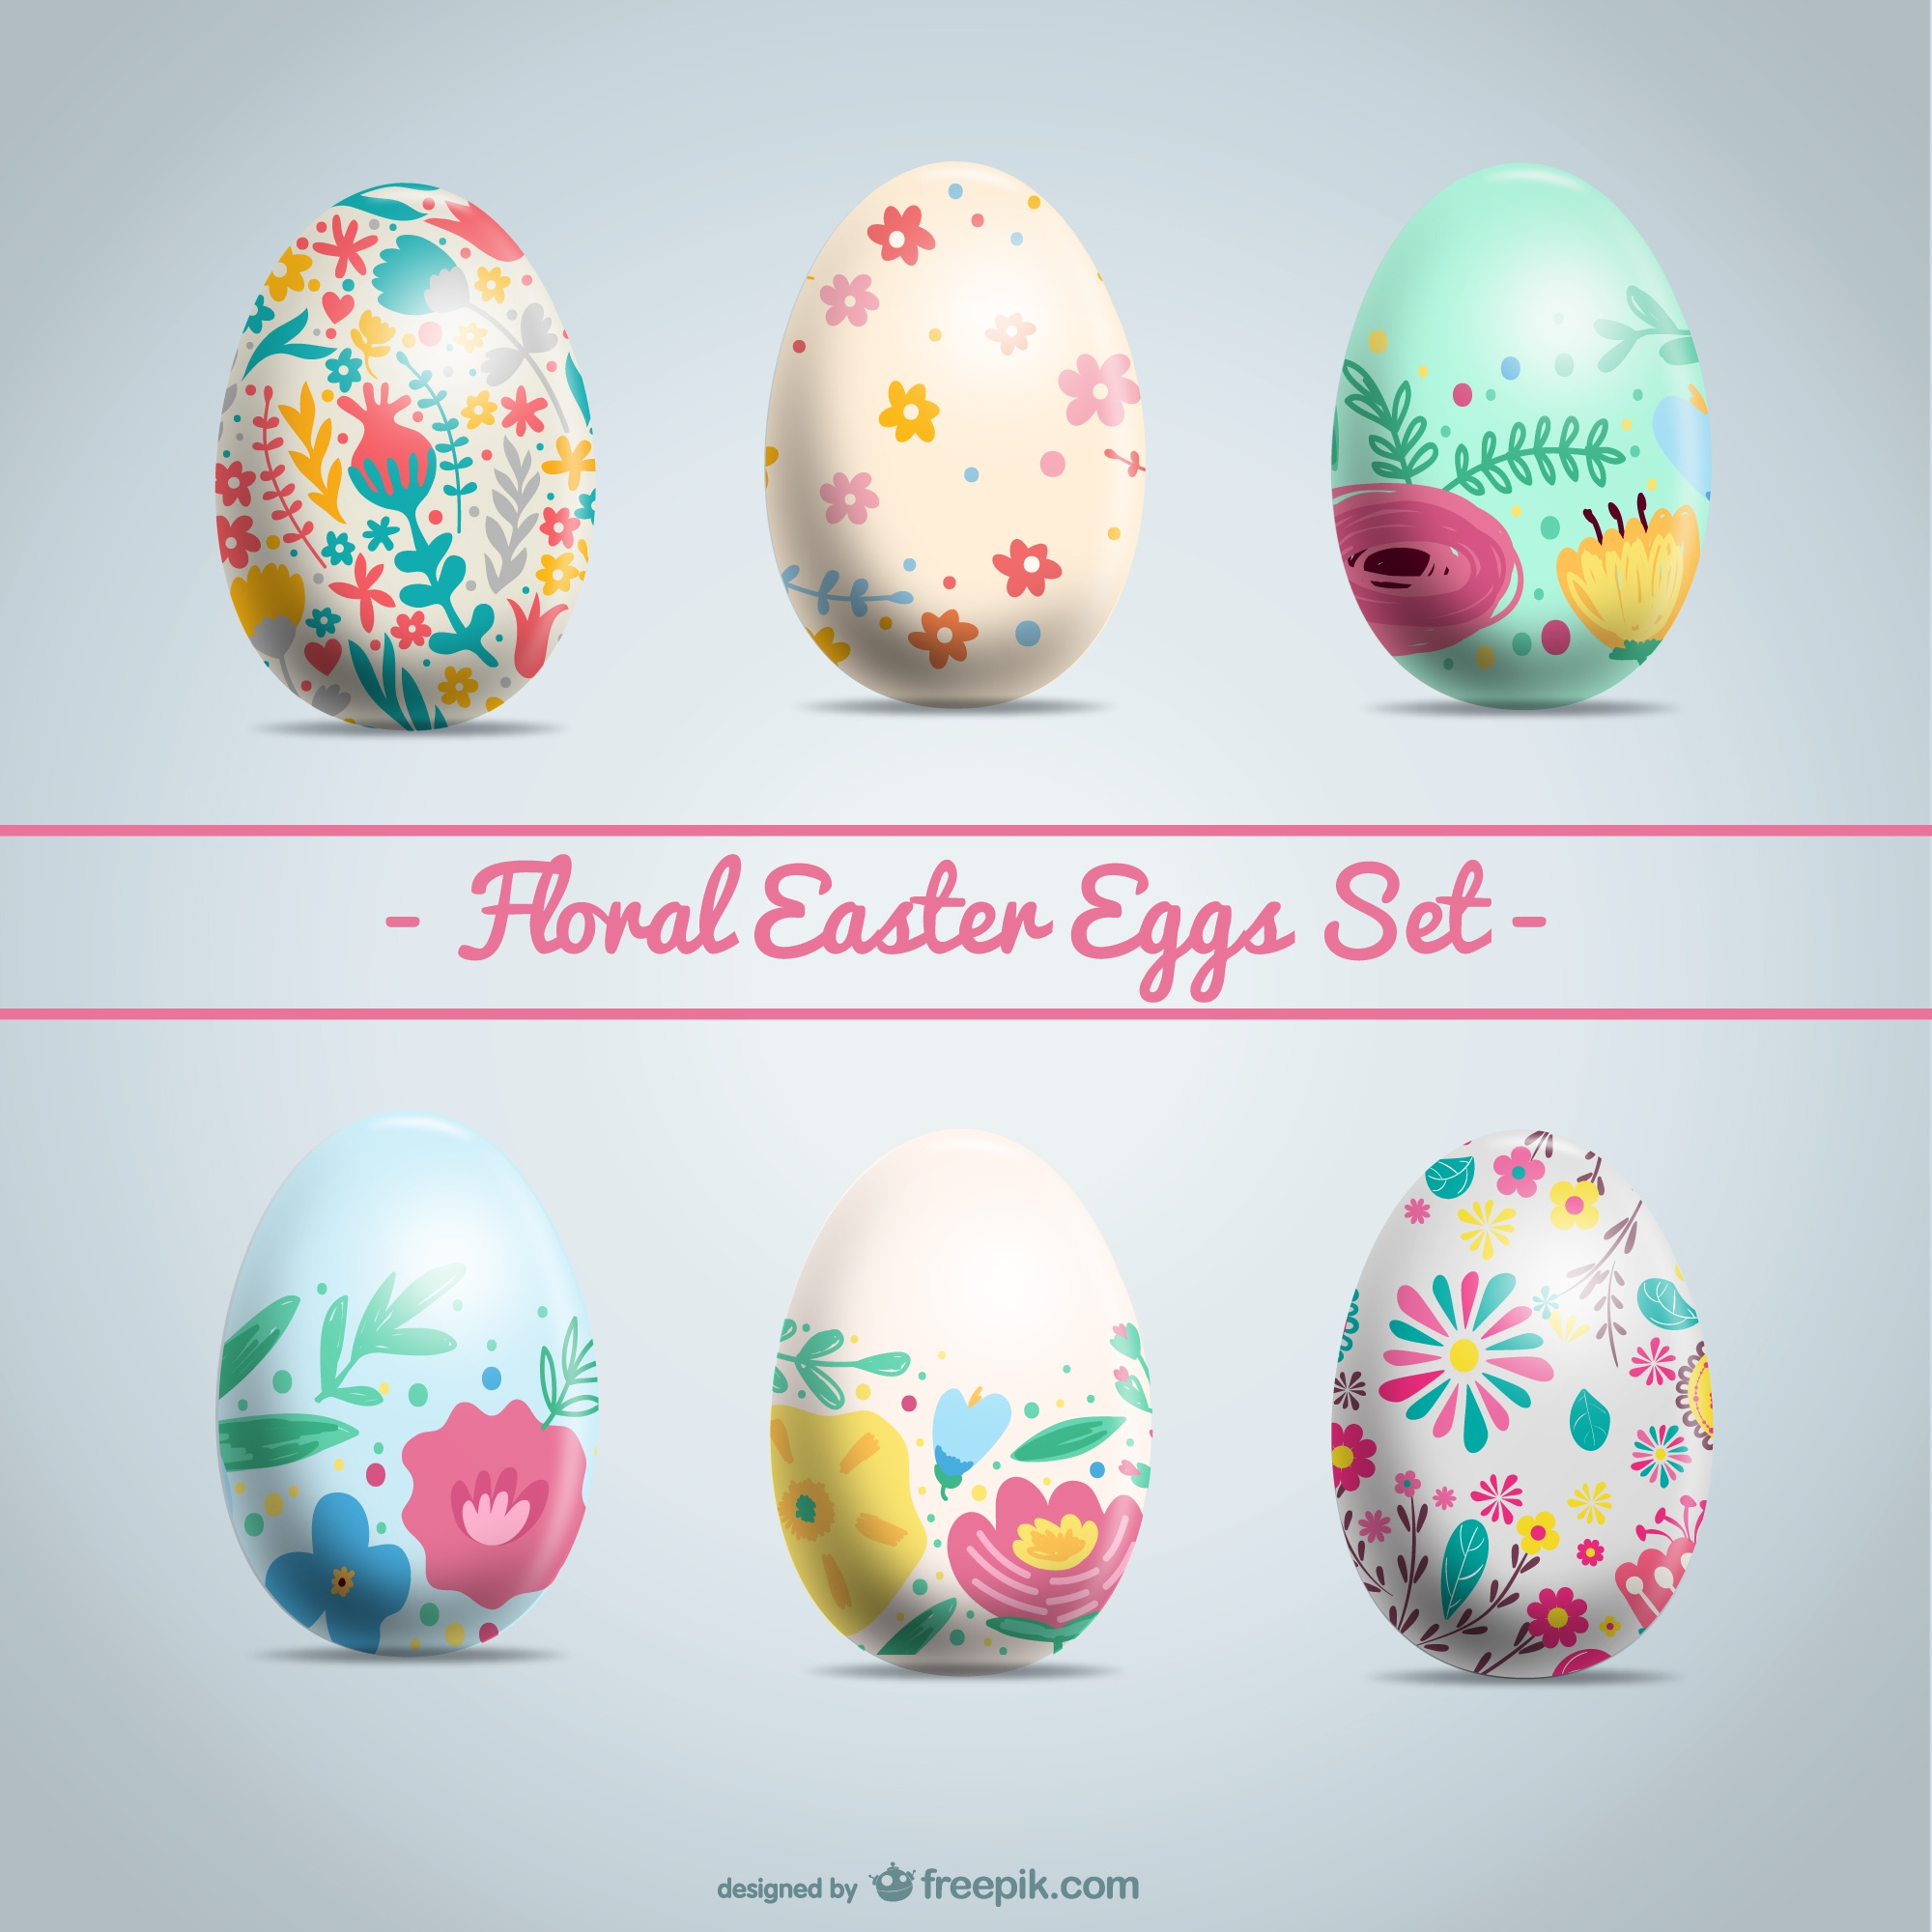 Retro Easter eggs floral decoration